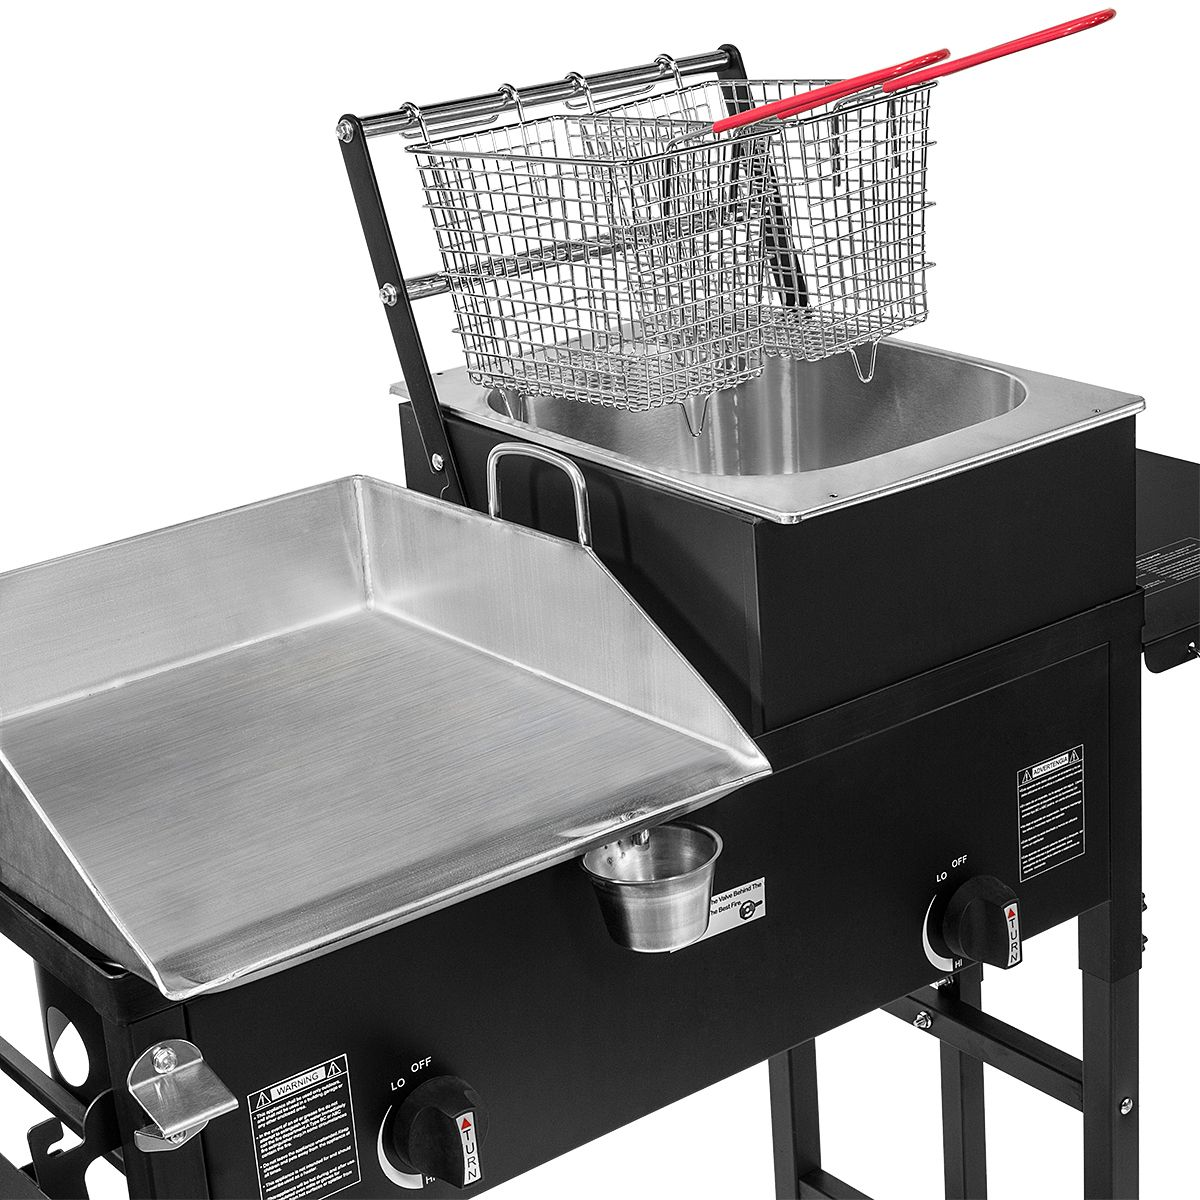 Outdoor Kitchen Grill Griddle Combo